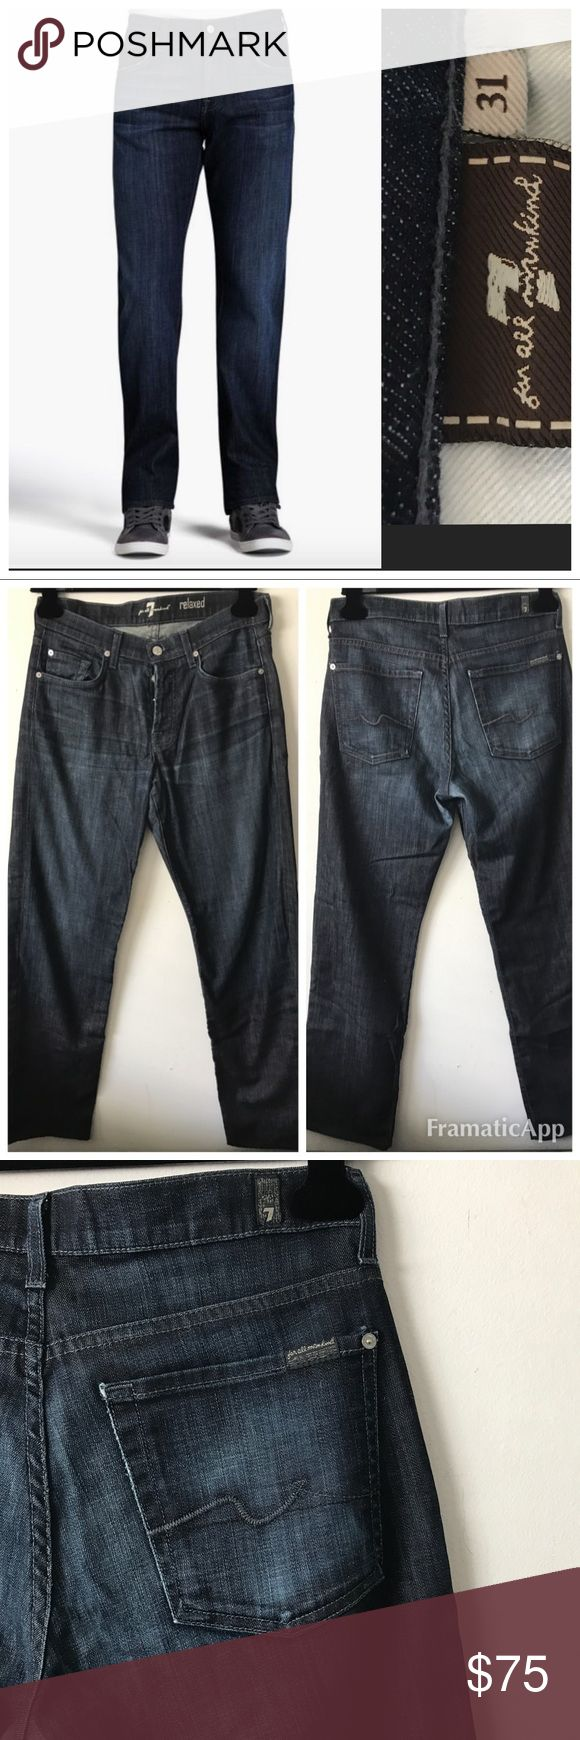 7 for all Mankind Men's Relaxed Jeans $197 size 31 7 For all Mankind Men's Relaxed Jeans in Los Angeles Dark size 31 Excellent condition! $187  The Relaxed sits higher on the waist & is a loose fitting jean w/a bootcut opening. It is a 5-pocket jean that has a button fly & 7 For All Mankind's signature squiggle back pocket design. The epitome of true LA style, the Los Angeles Dark is a rich indigo denim w/whiskering, light abrasion, and fading on the front & back * Button Fly * Made in the…